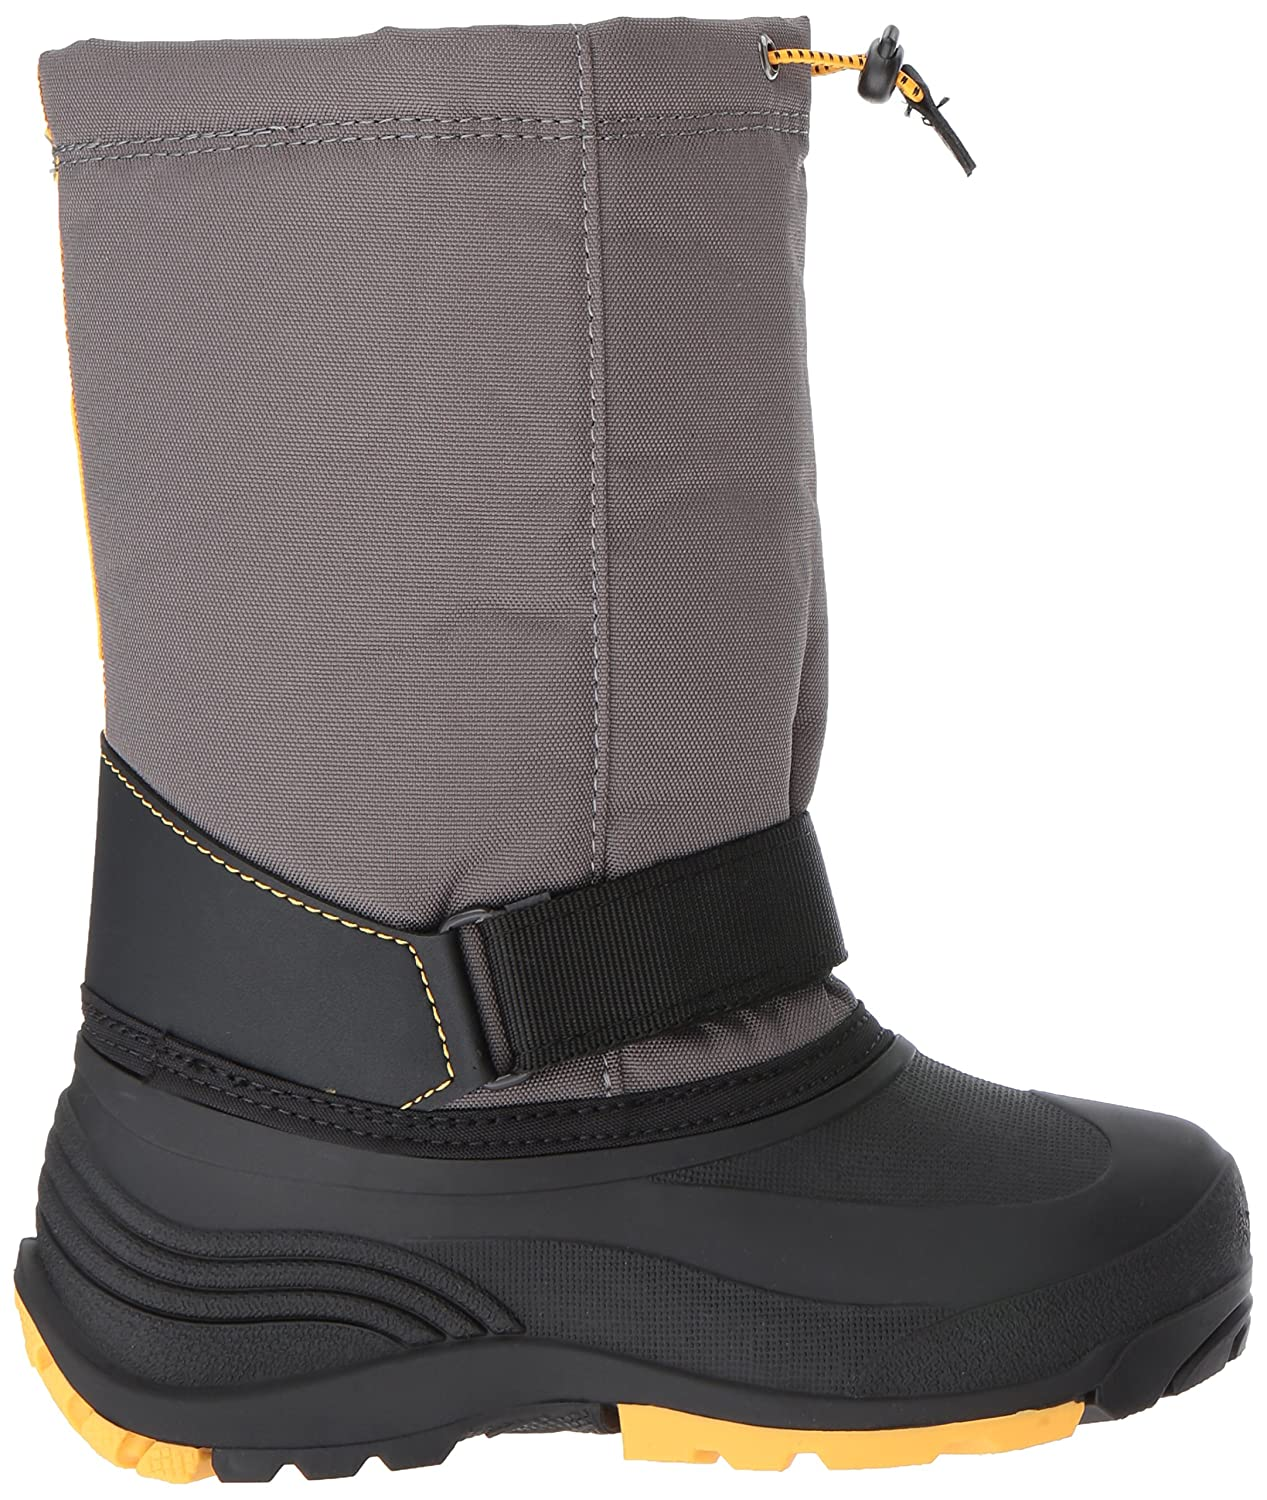 Kamik Boys' Rocket Snow Stiefel, Charcoal Medium Gelb, 5 Medium Charcoal US Big Kid d11a8c